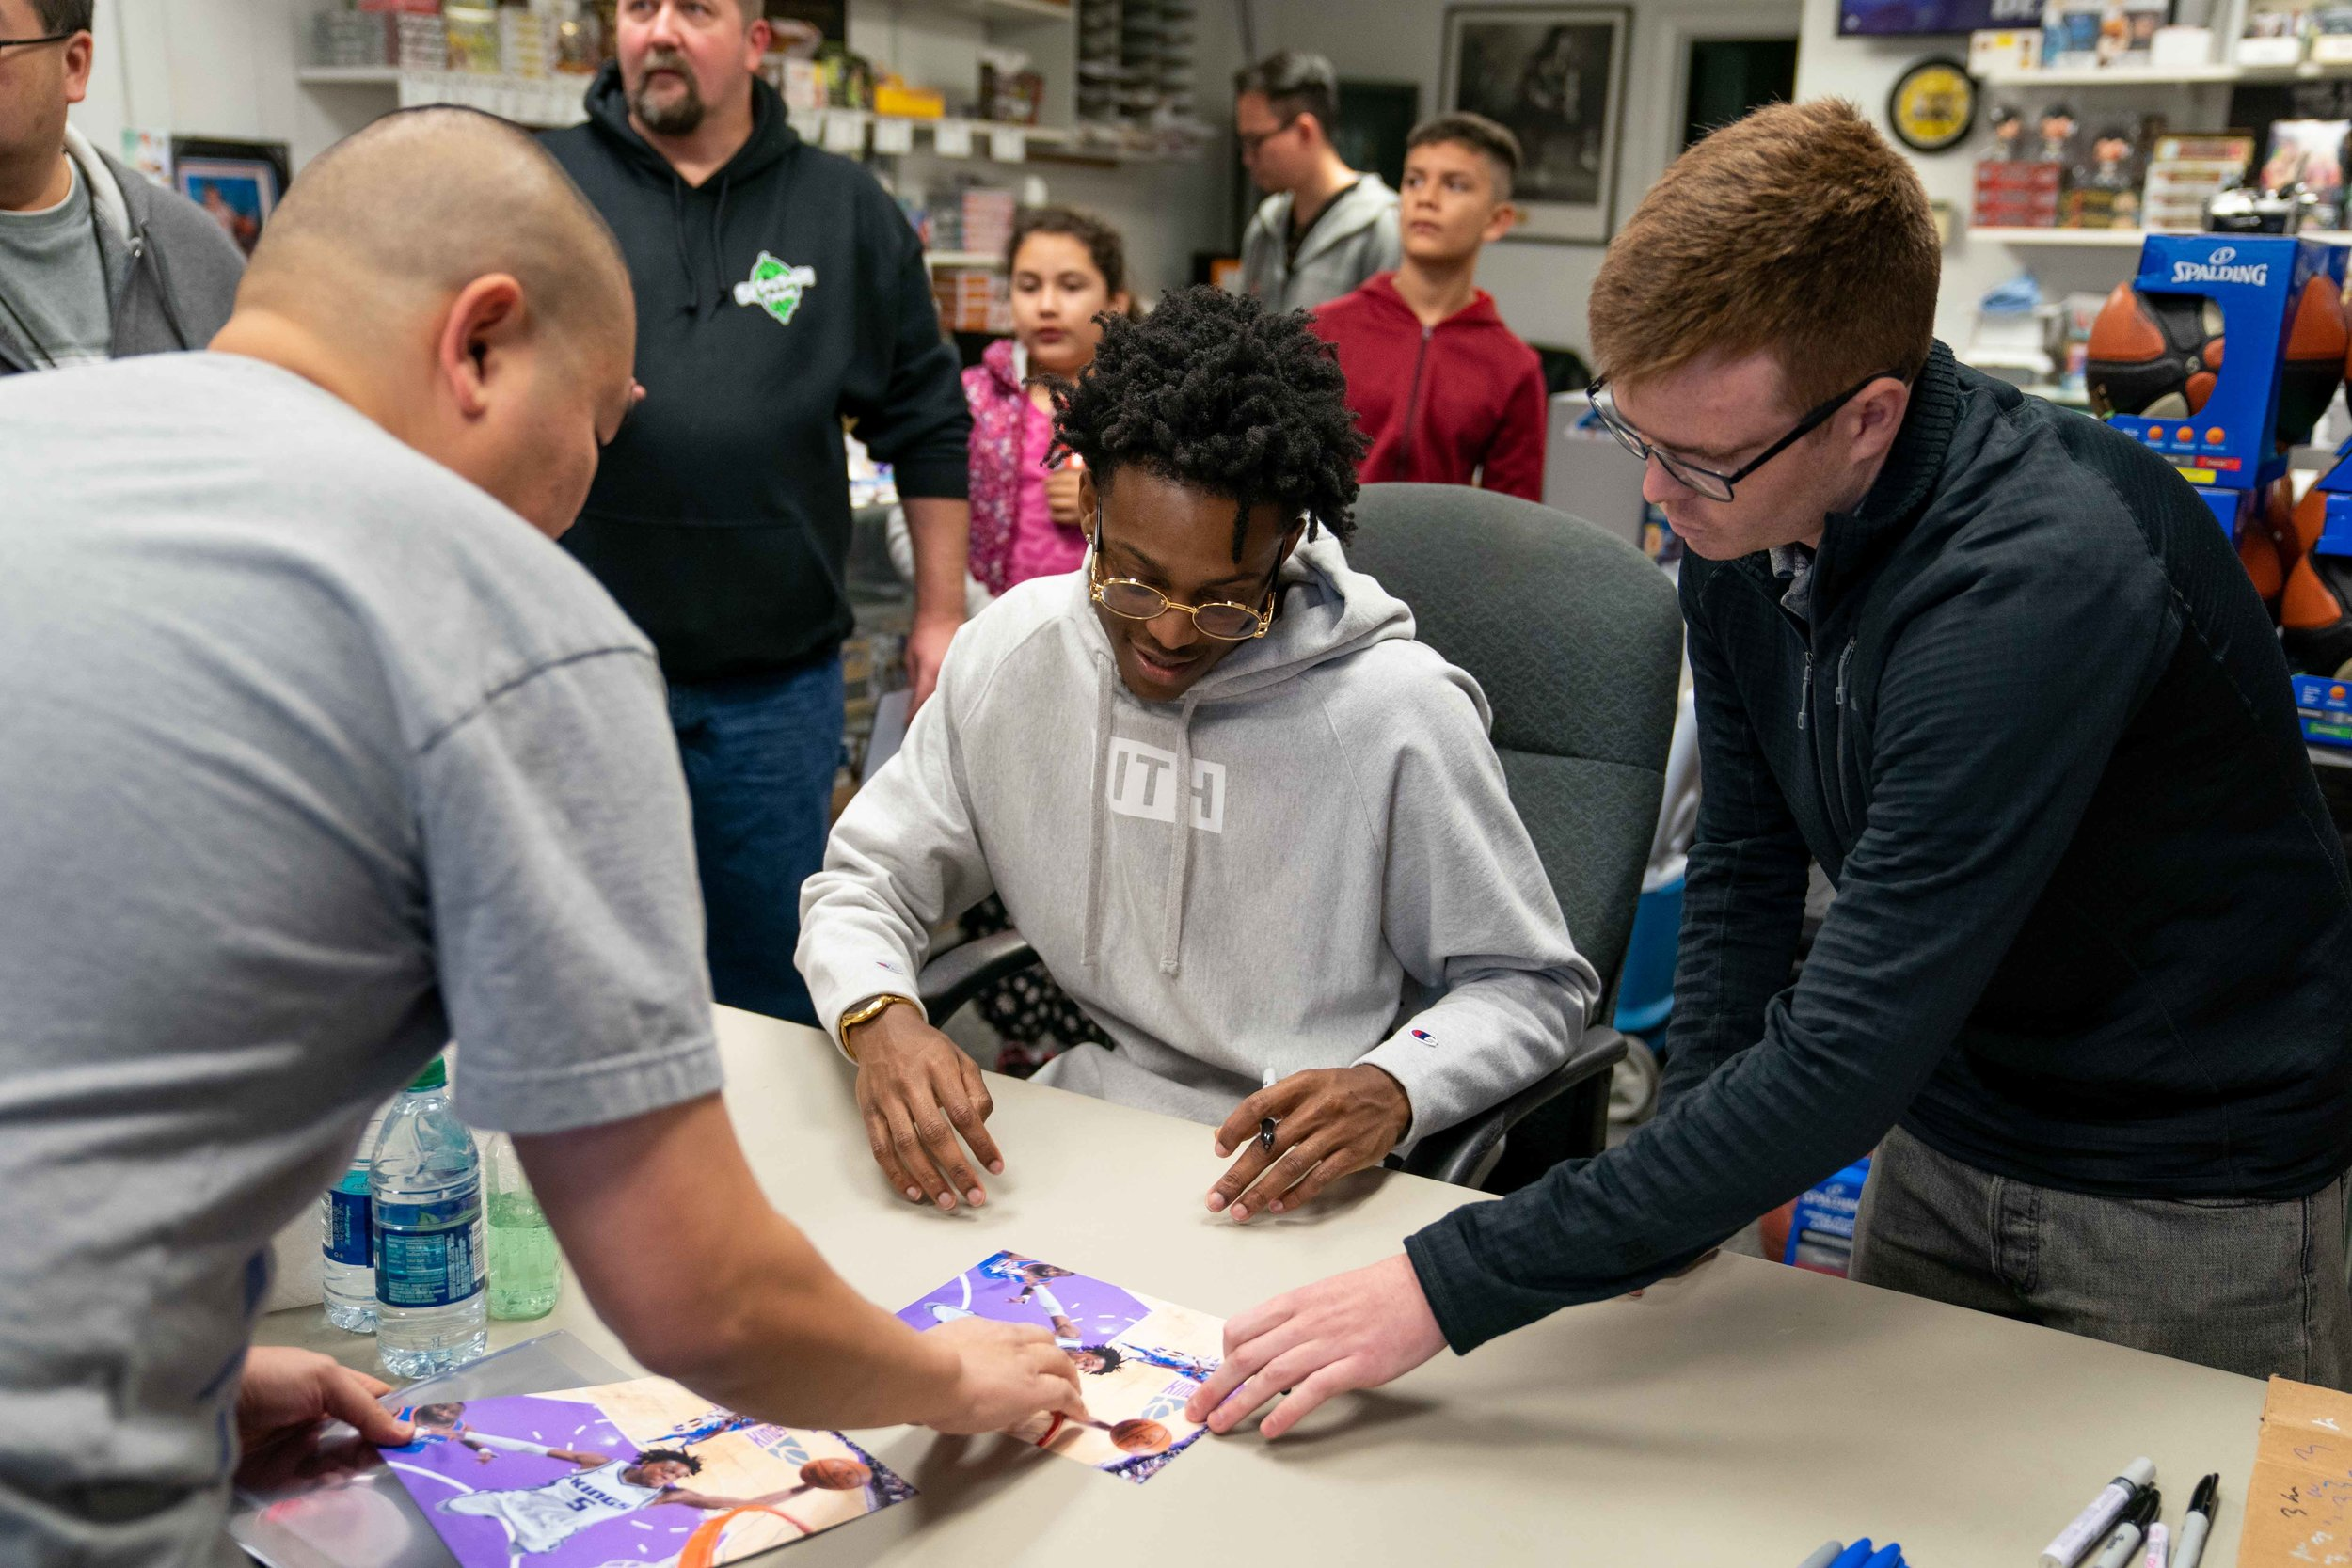 De'Aaron Fox - Signing Session at DnP Sportscards 12.2.18